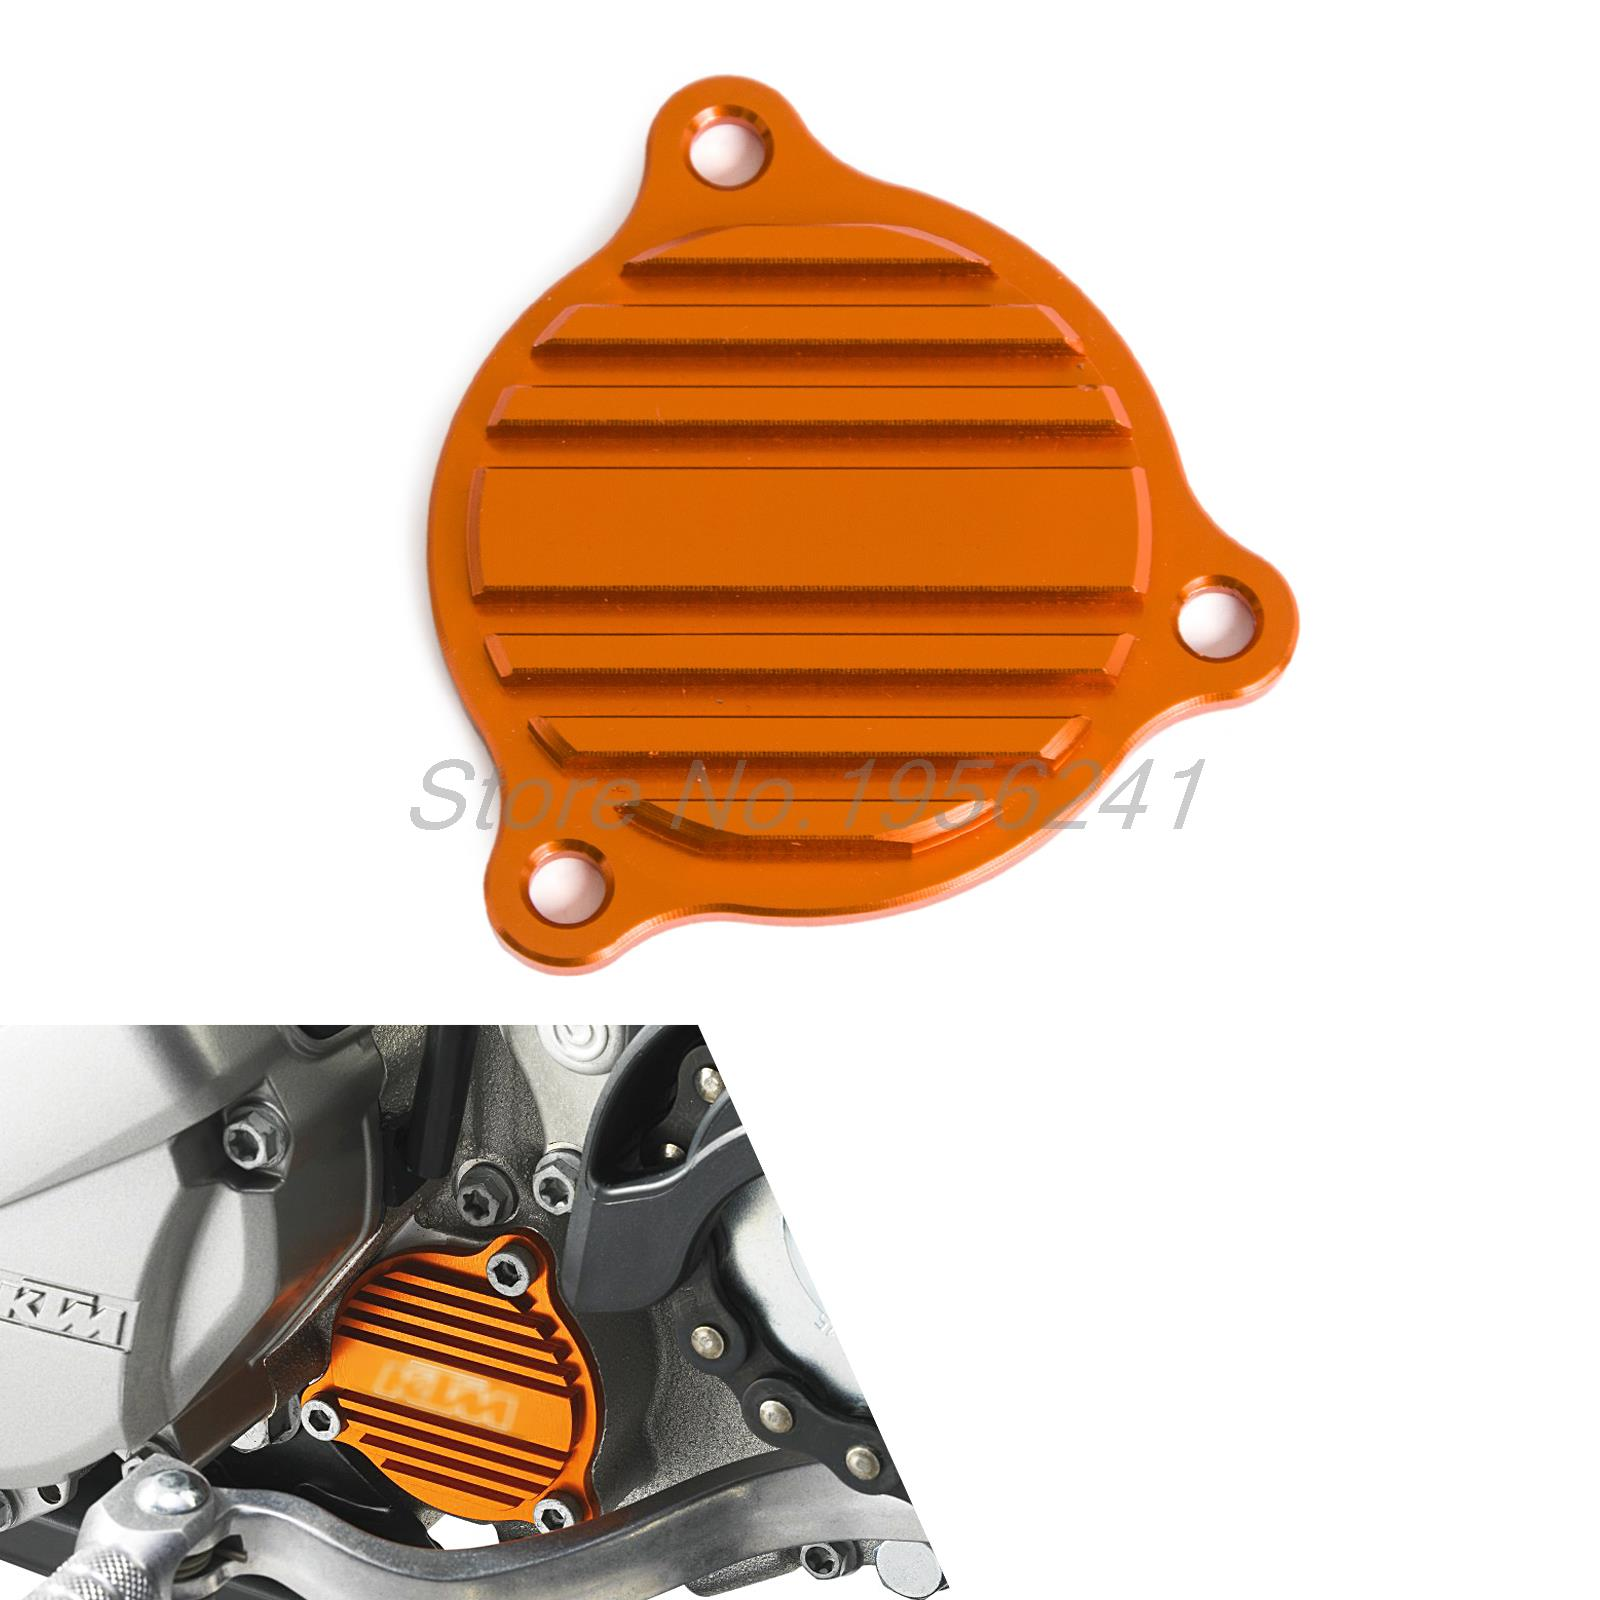 CNC Oil Filter Cover Fits KTM 400 450 500 530 EXC EXC-R SIX DAYS XCR-W SMR XC-F XC-W EXC-R orange cnc billet factory oil filter cover for ktm sx exc xc f xcf w 250 400 450 520 525 540 950 990